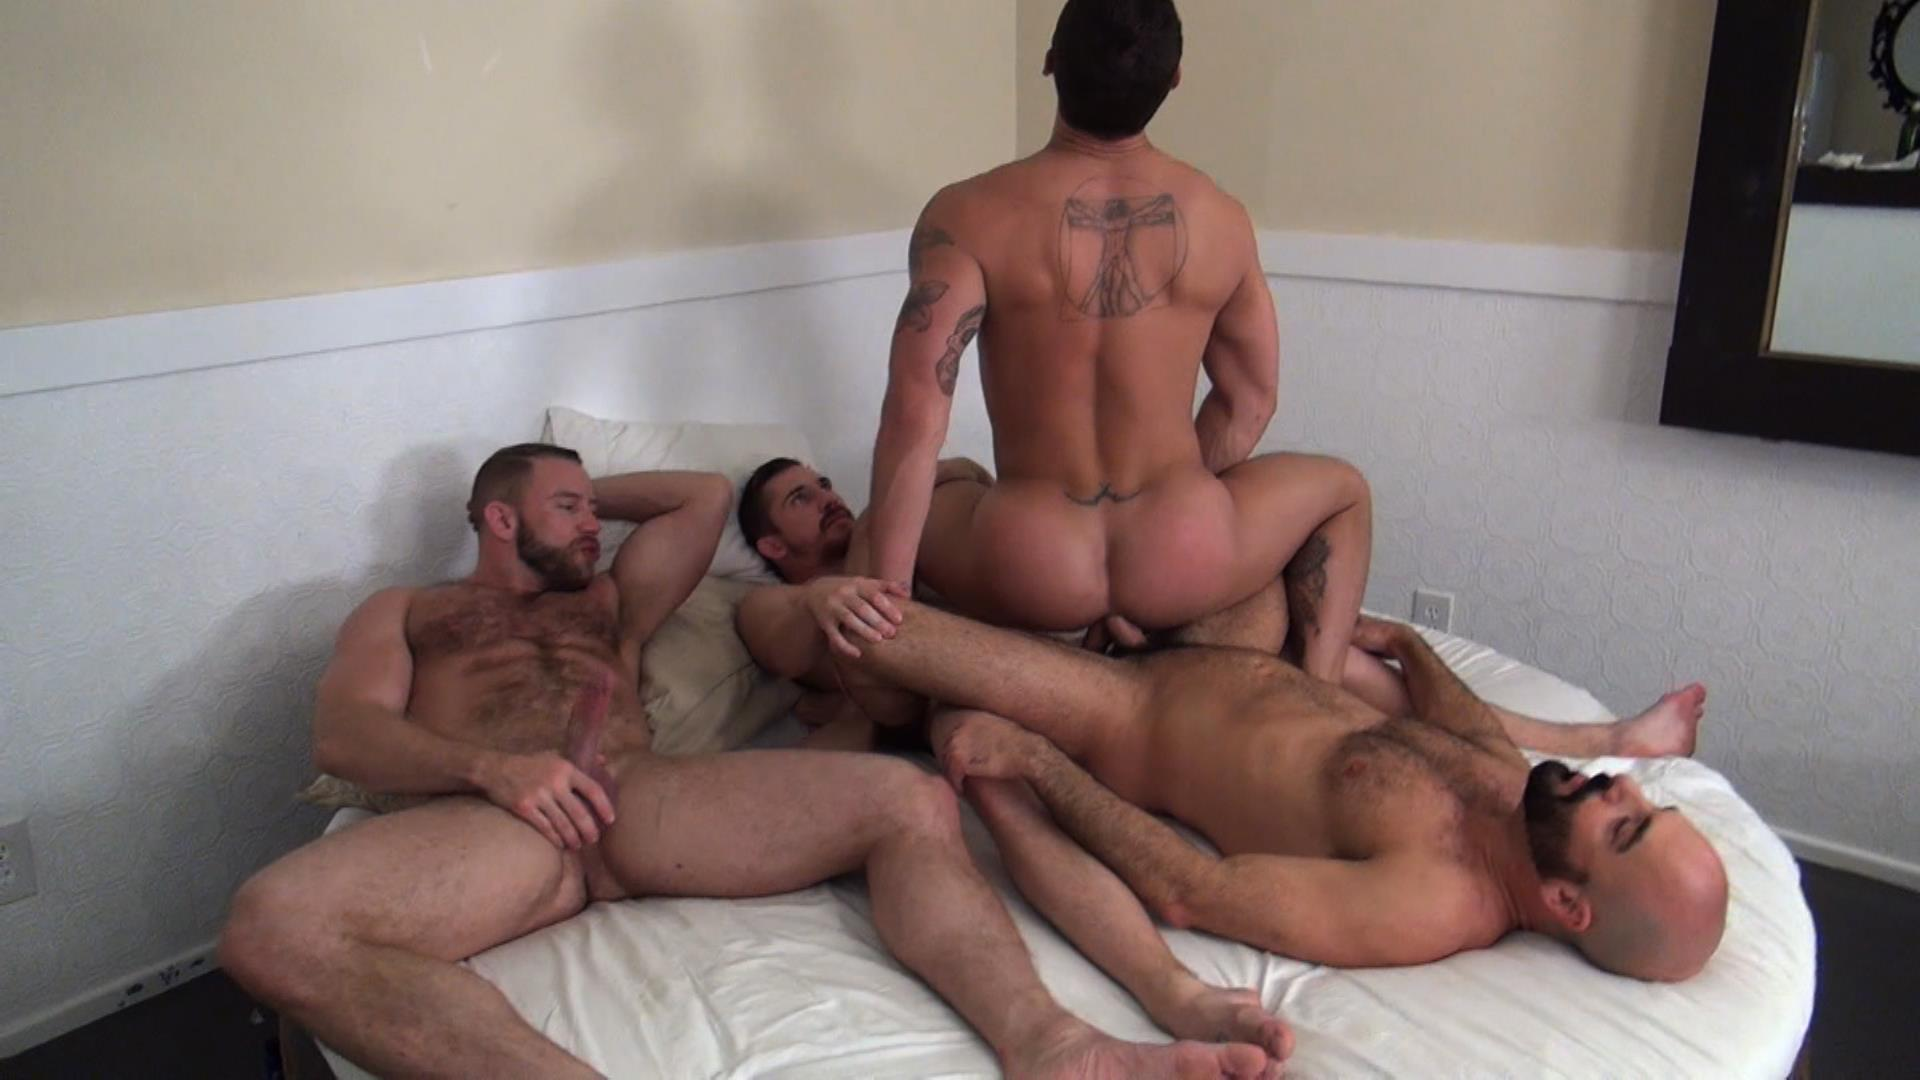 Raw-Fuck-Club-Dayton-OConnor-Tate-Ryder-Shay-Michaels-Adam-Russo-Bareback-Breeding-Amateur-Gay-Porn-1 Tate Ryder Gets Three Hairy Muscle Daddy Bareback Cocks